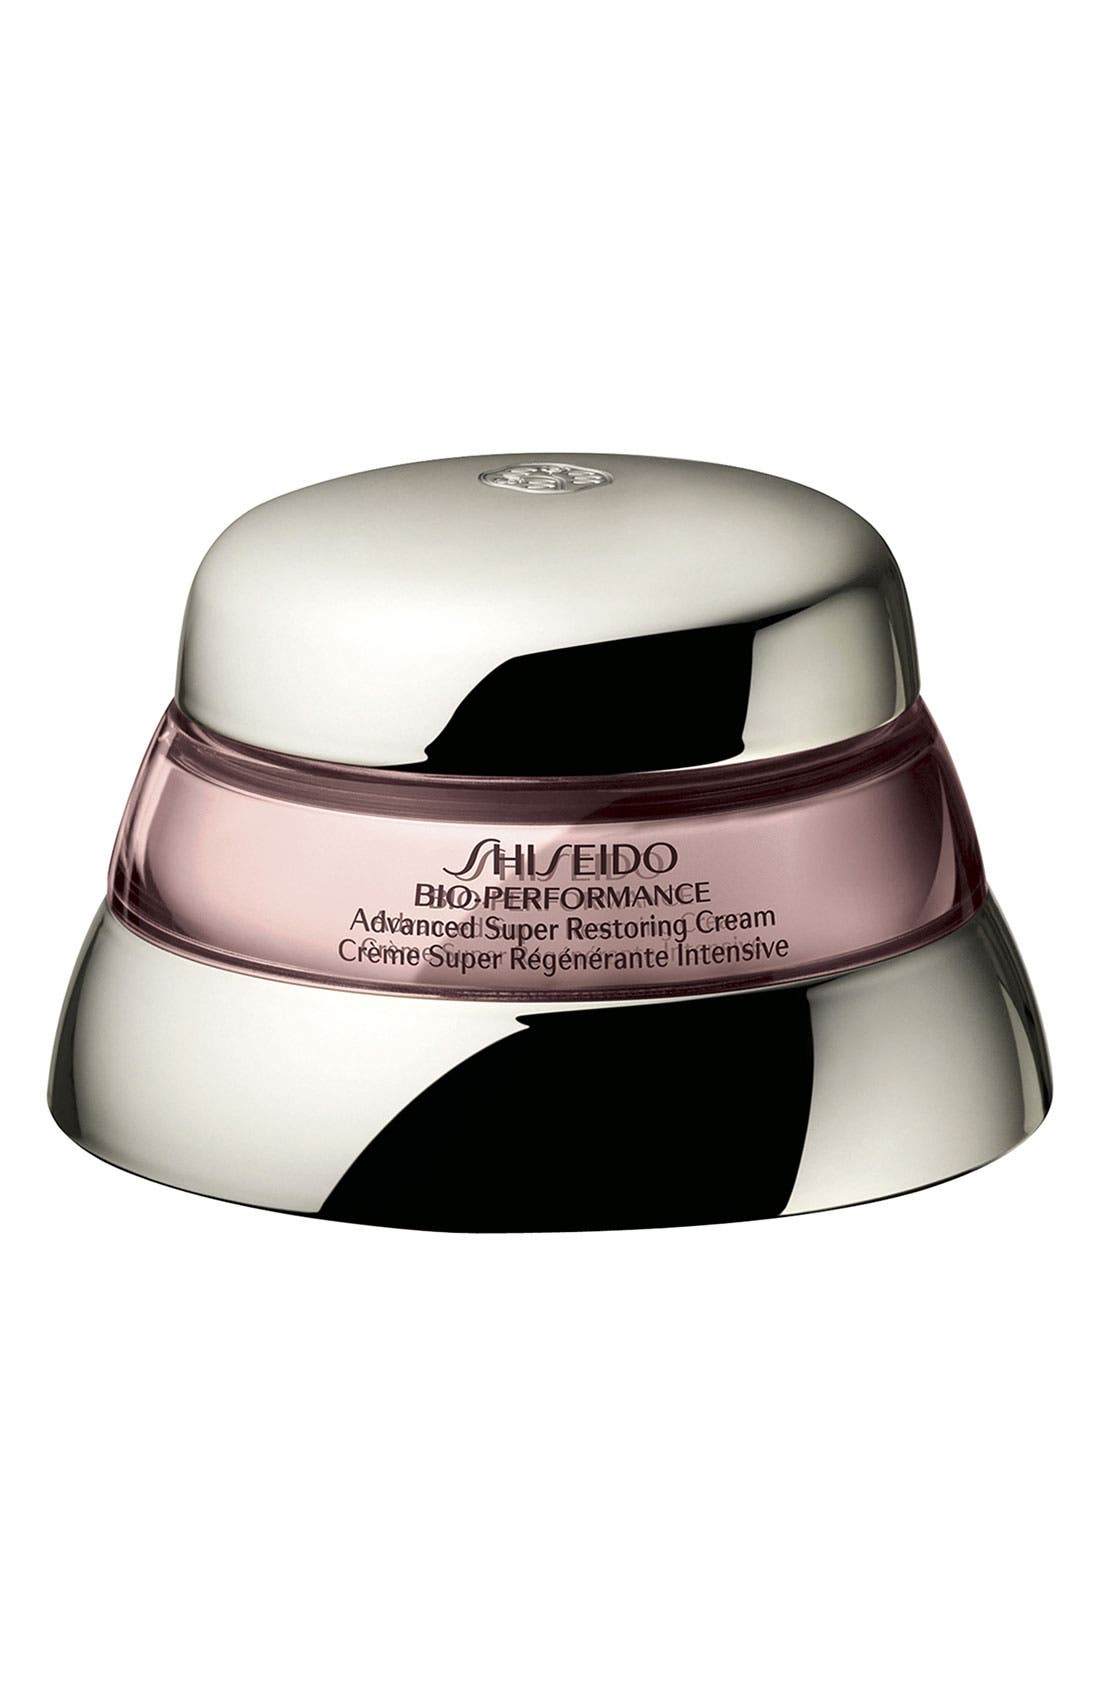 Bio-Performance Advanced Super Restoring Cream,                             Main thumbnail 1, color,                             NO COLOR